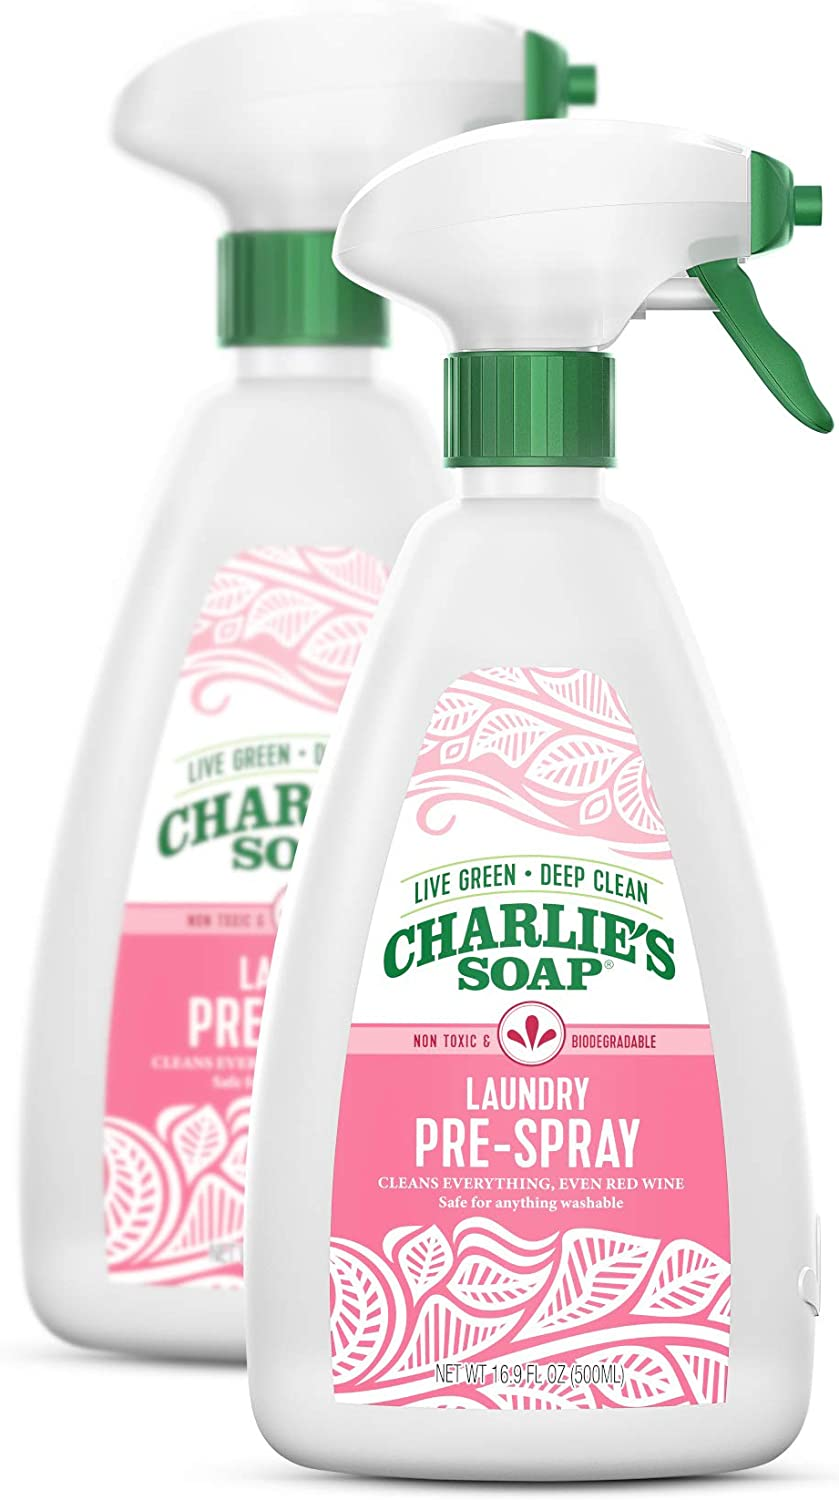 Charlie's Soap Laundry Pre-Spray (16 Fl. Oz, 2 Pack) Natural Laundry Pretreat and Stain Remover – Powerful, Non-Toxic and Eco-Friendly